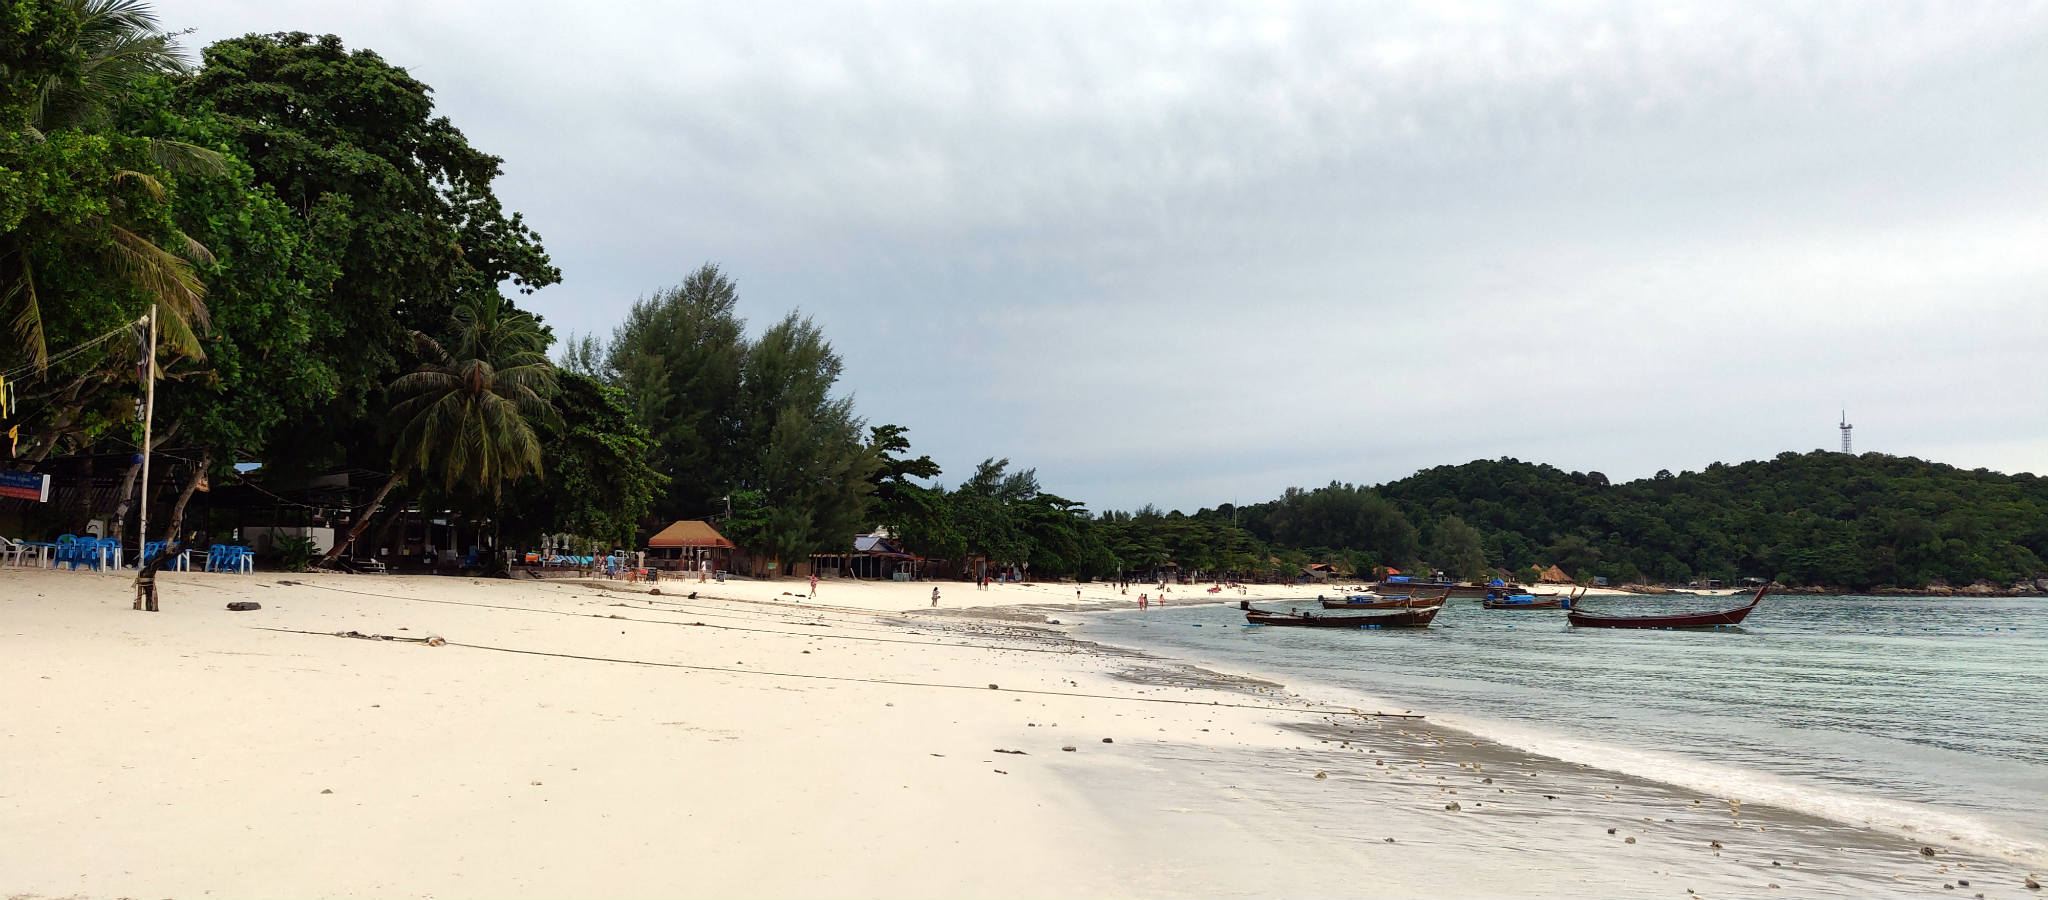 The long beach of Pattaya Beach in Koh Lipe, Thailand